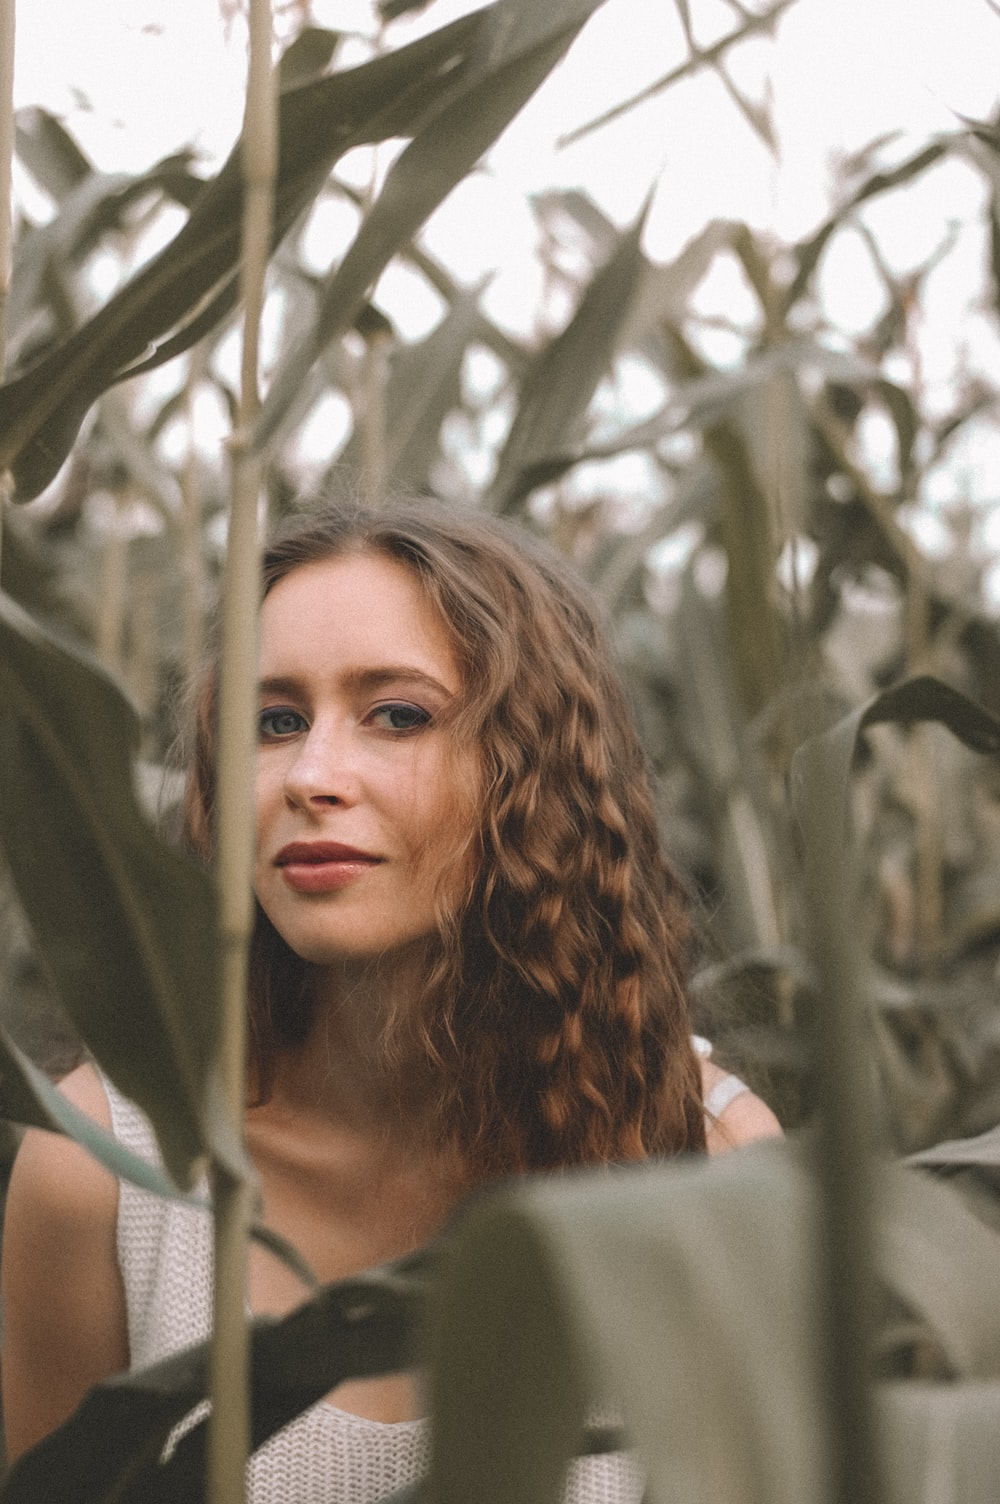 woman standing and surrounded by corn plants